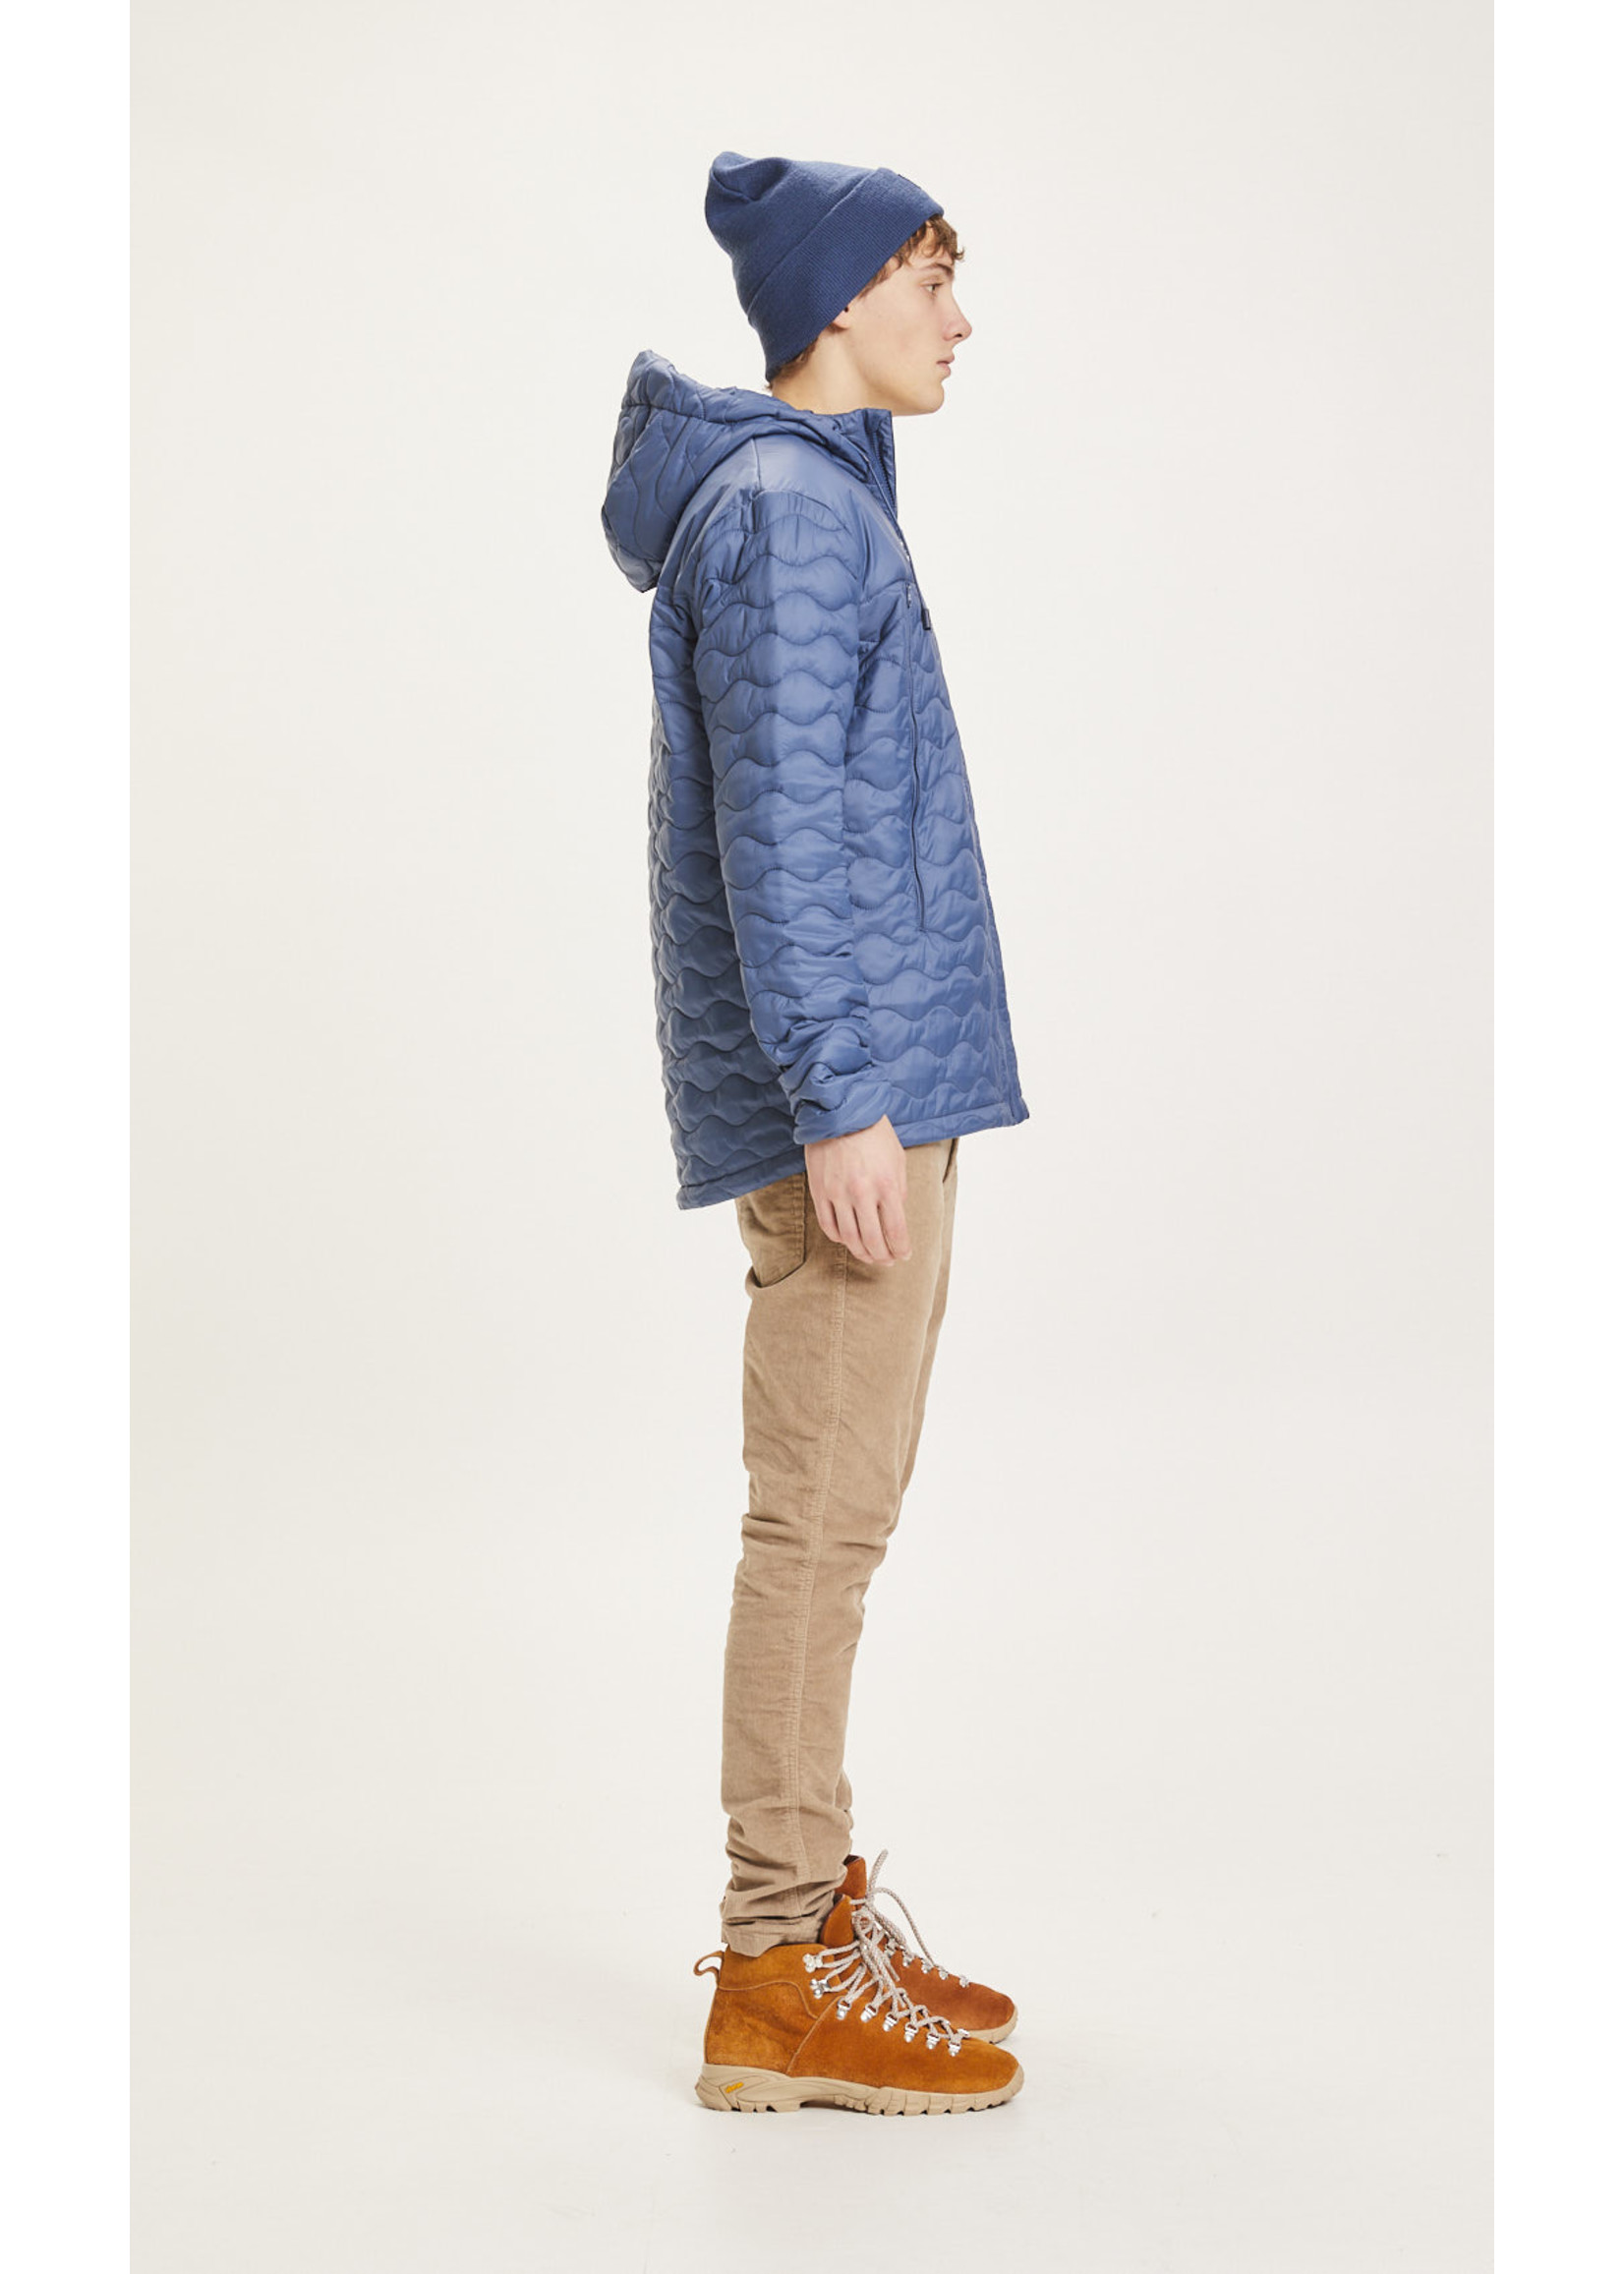 KnowledgeCotton KnowledgeCotton Eco Active Thermore quilted jacket - Dark Denim